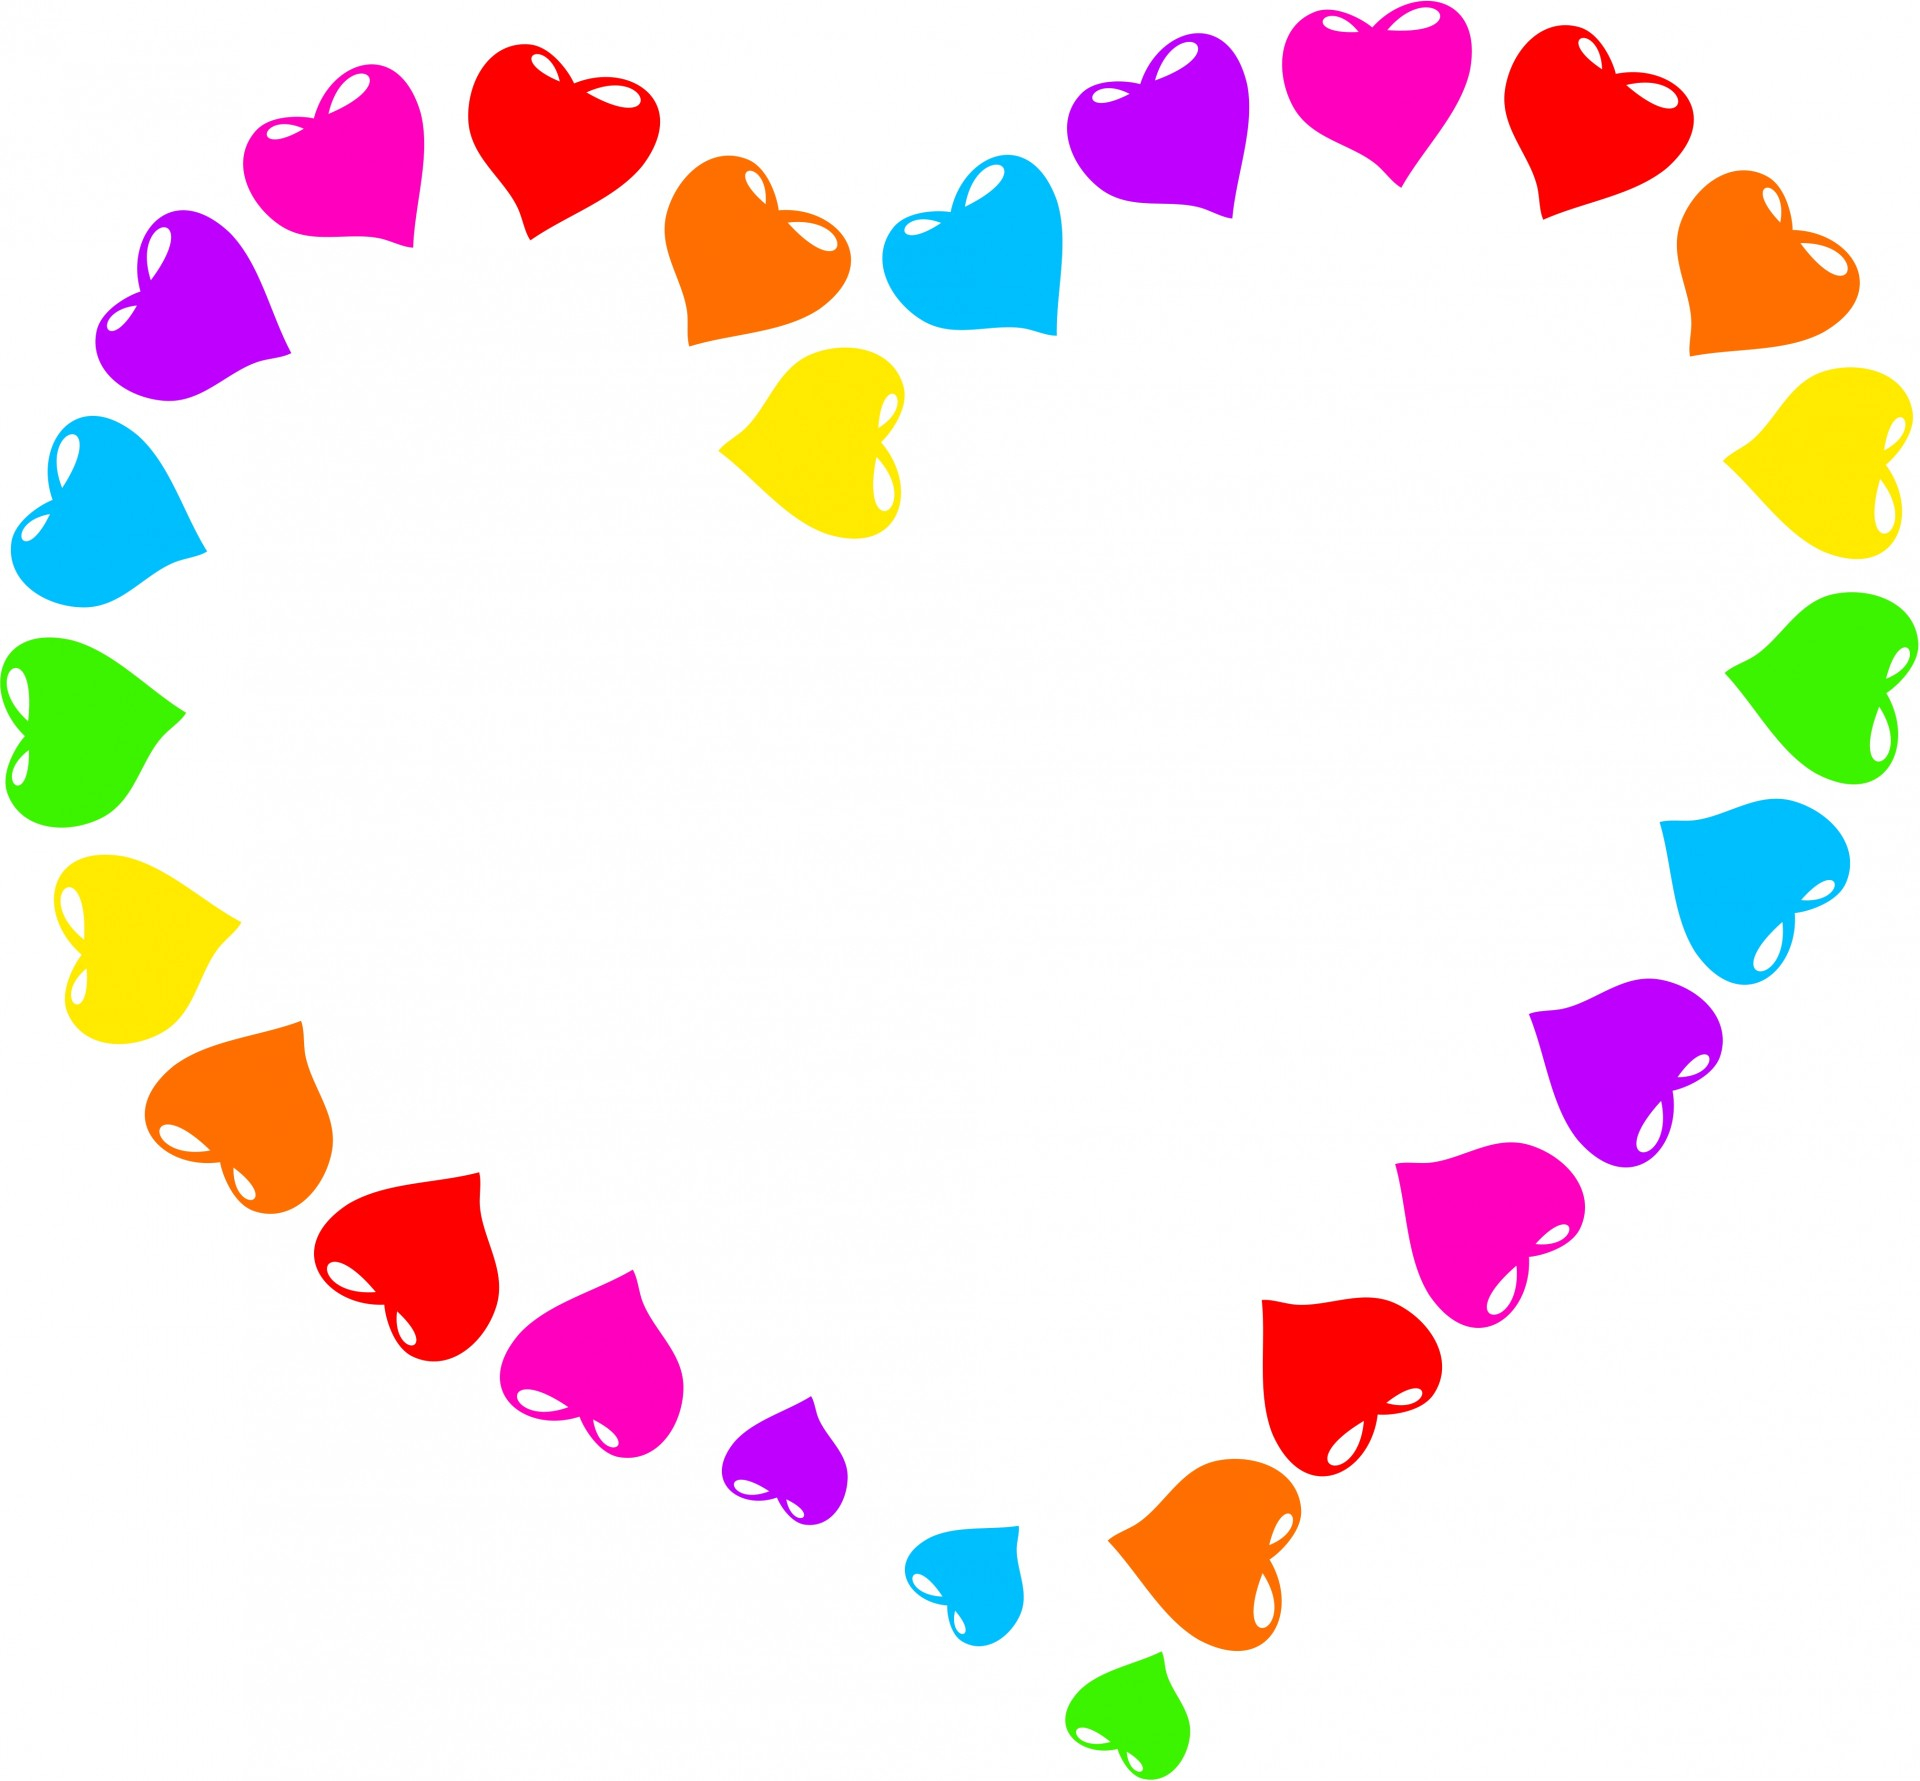 Heart-shaped clipart loveheart Free collection clipart Heart images